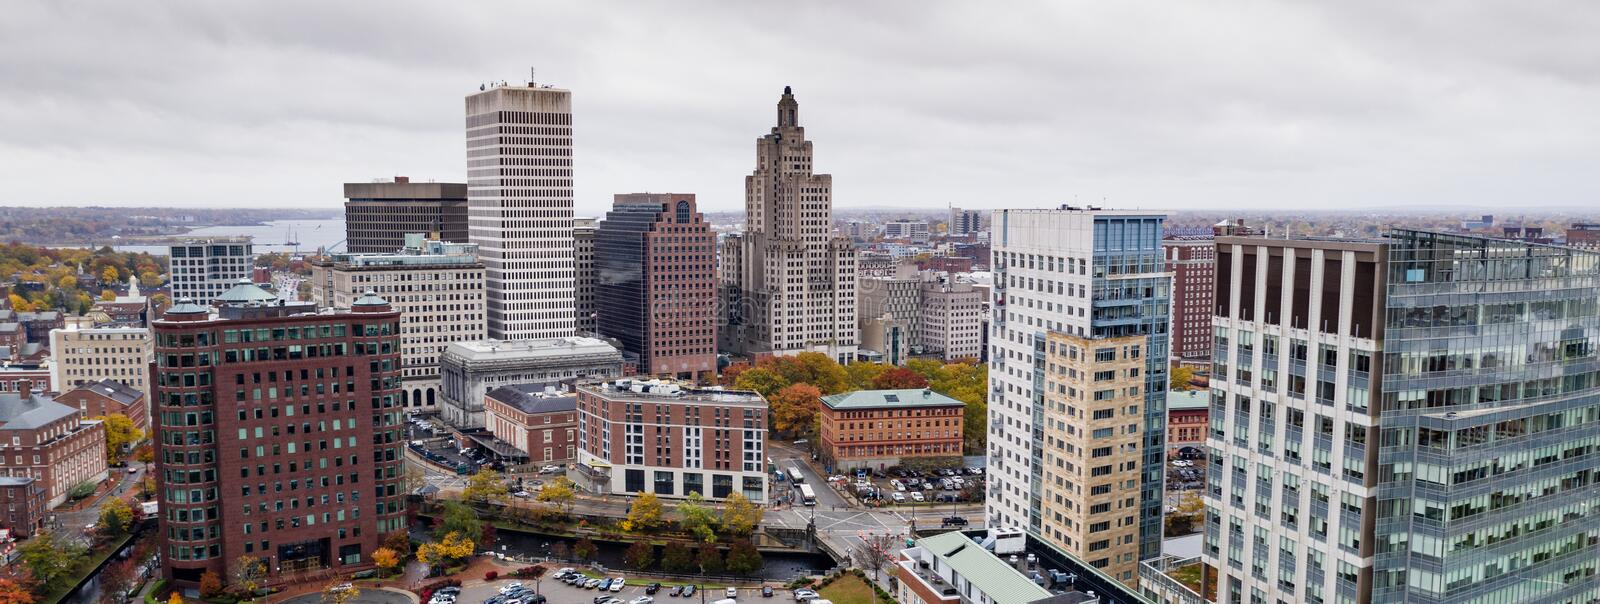 Aerial View Over Providence Rhode Island State Capital City. Overcast Skies Downtown City Urban Skyline State Capital Providence Rhode Island royalty free stock images